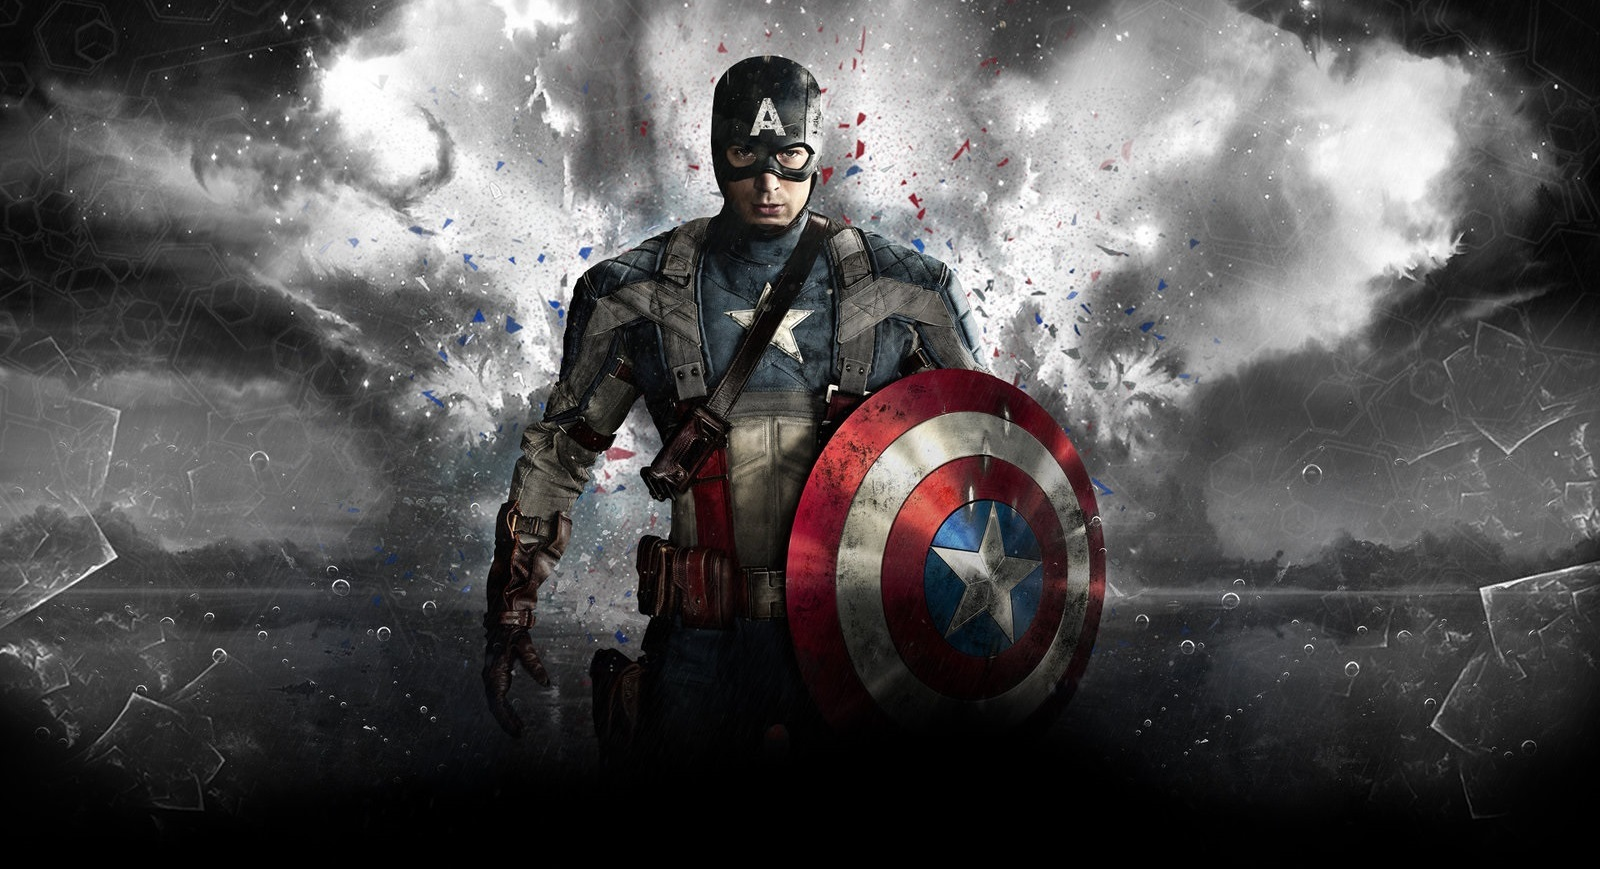 49 captain america wallpapers hd on wallpapersafari - Captain america hd images download ...